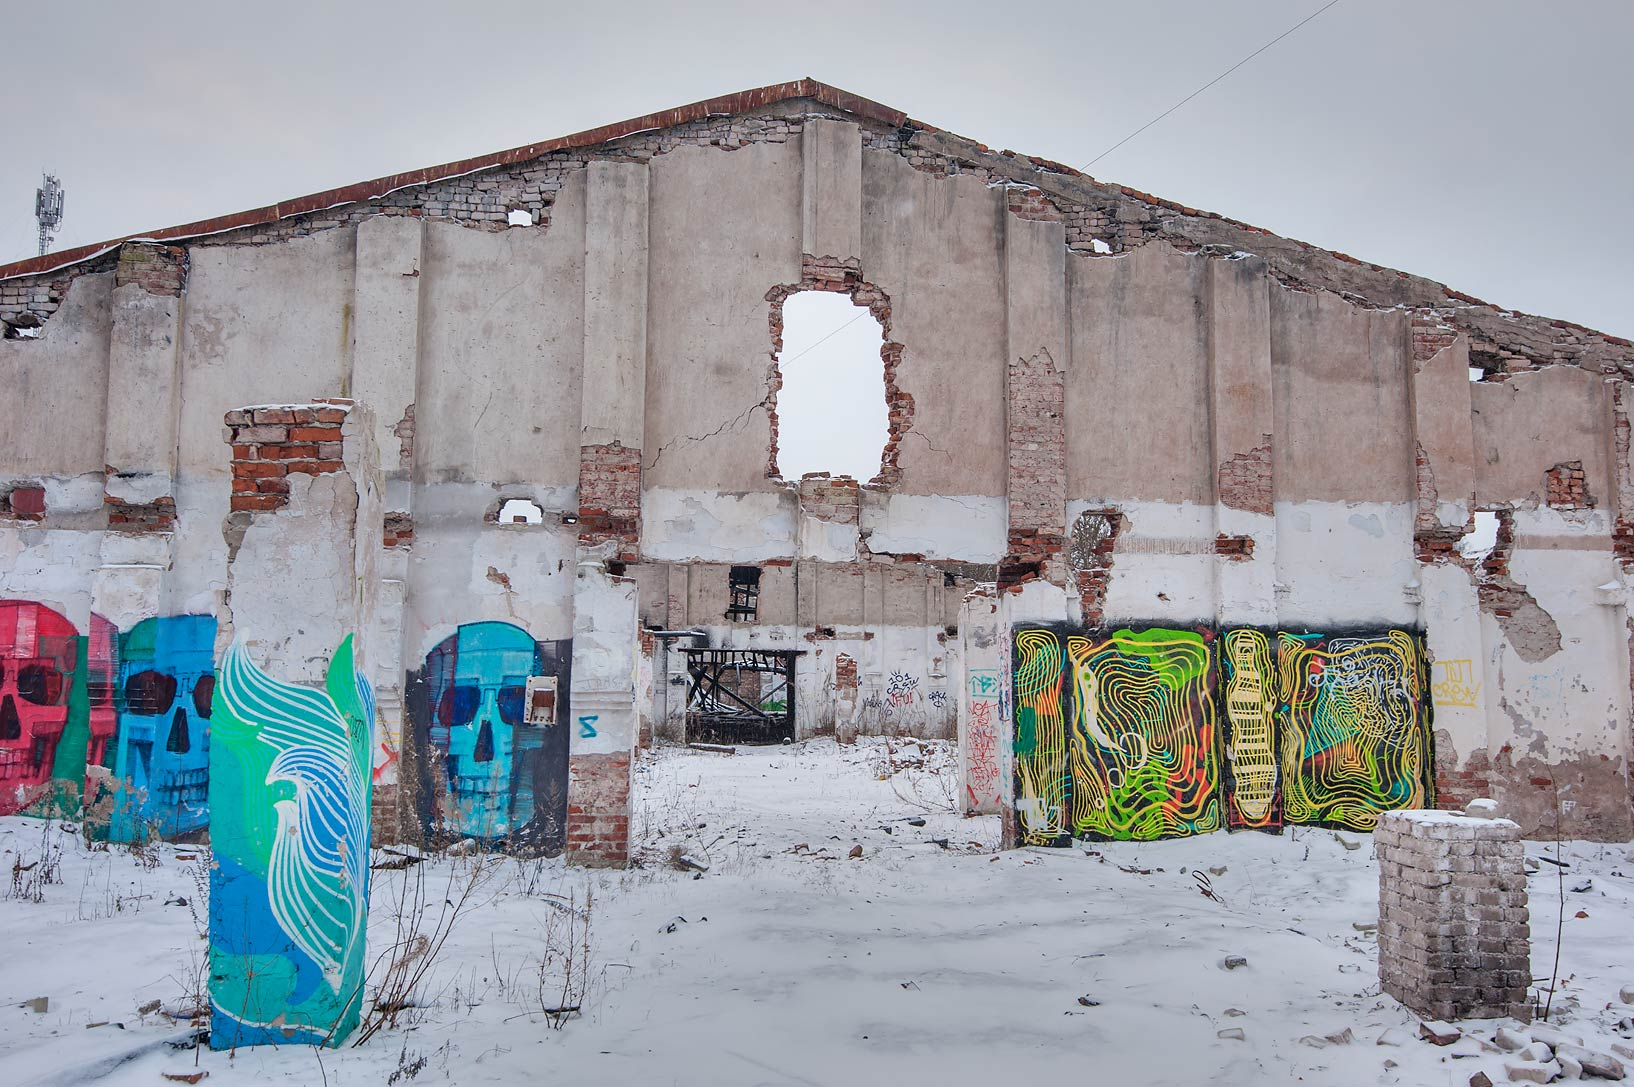 Graffiti in old warehouse at Internatsionalnaya St. in Kronstadt. St.Petersburg, Russia